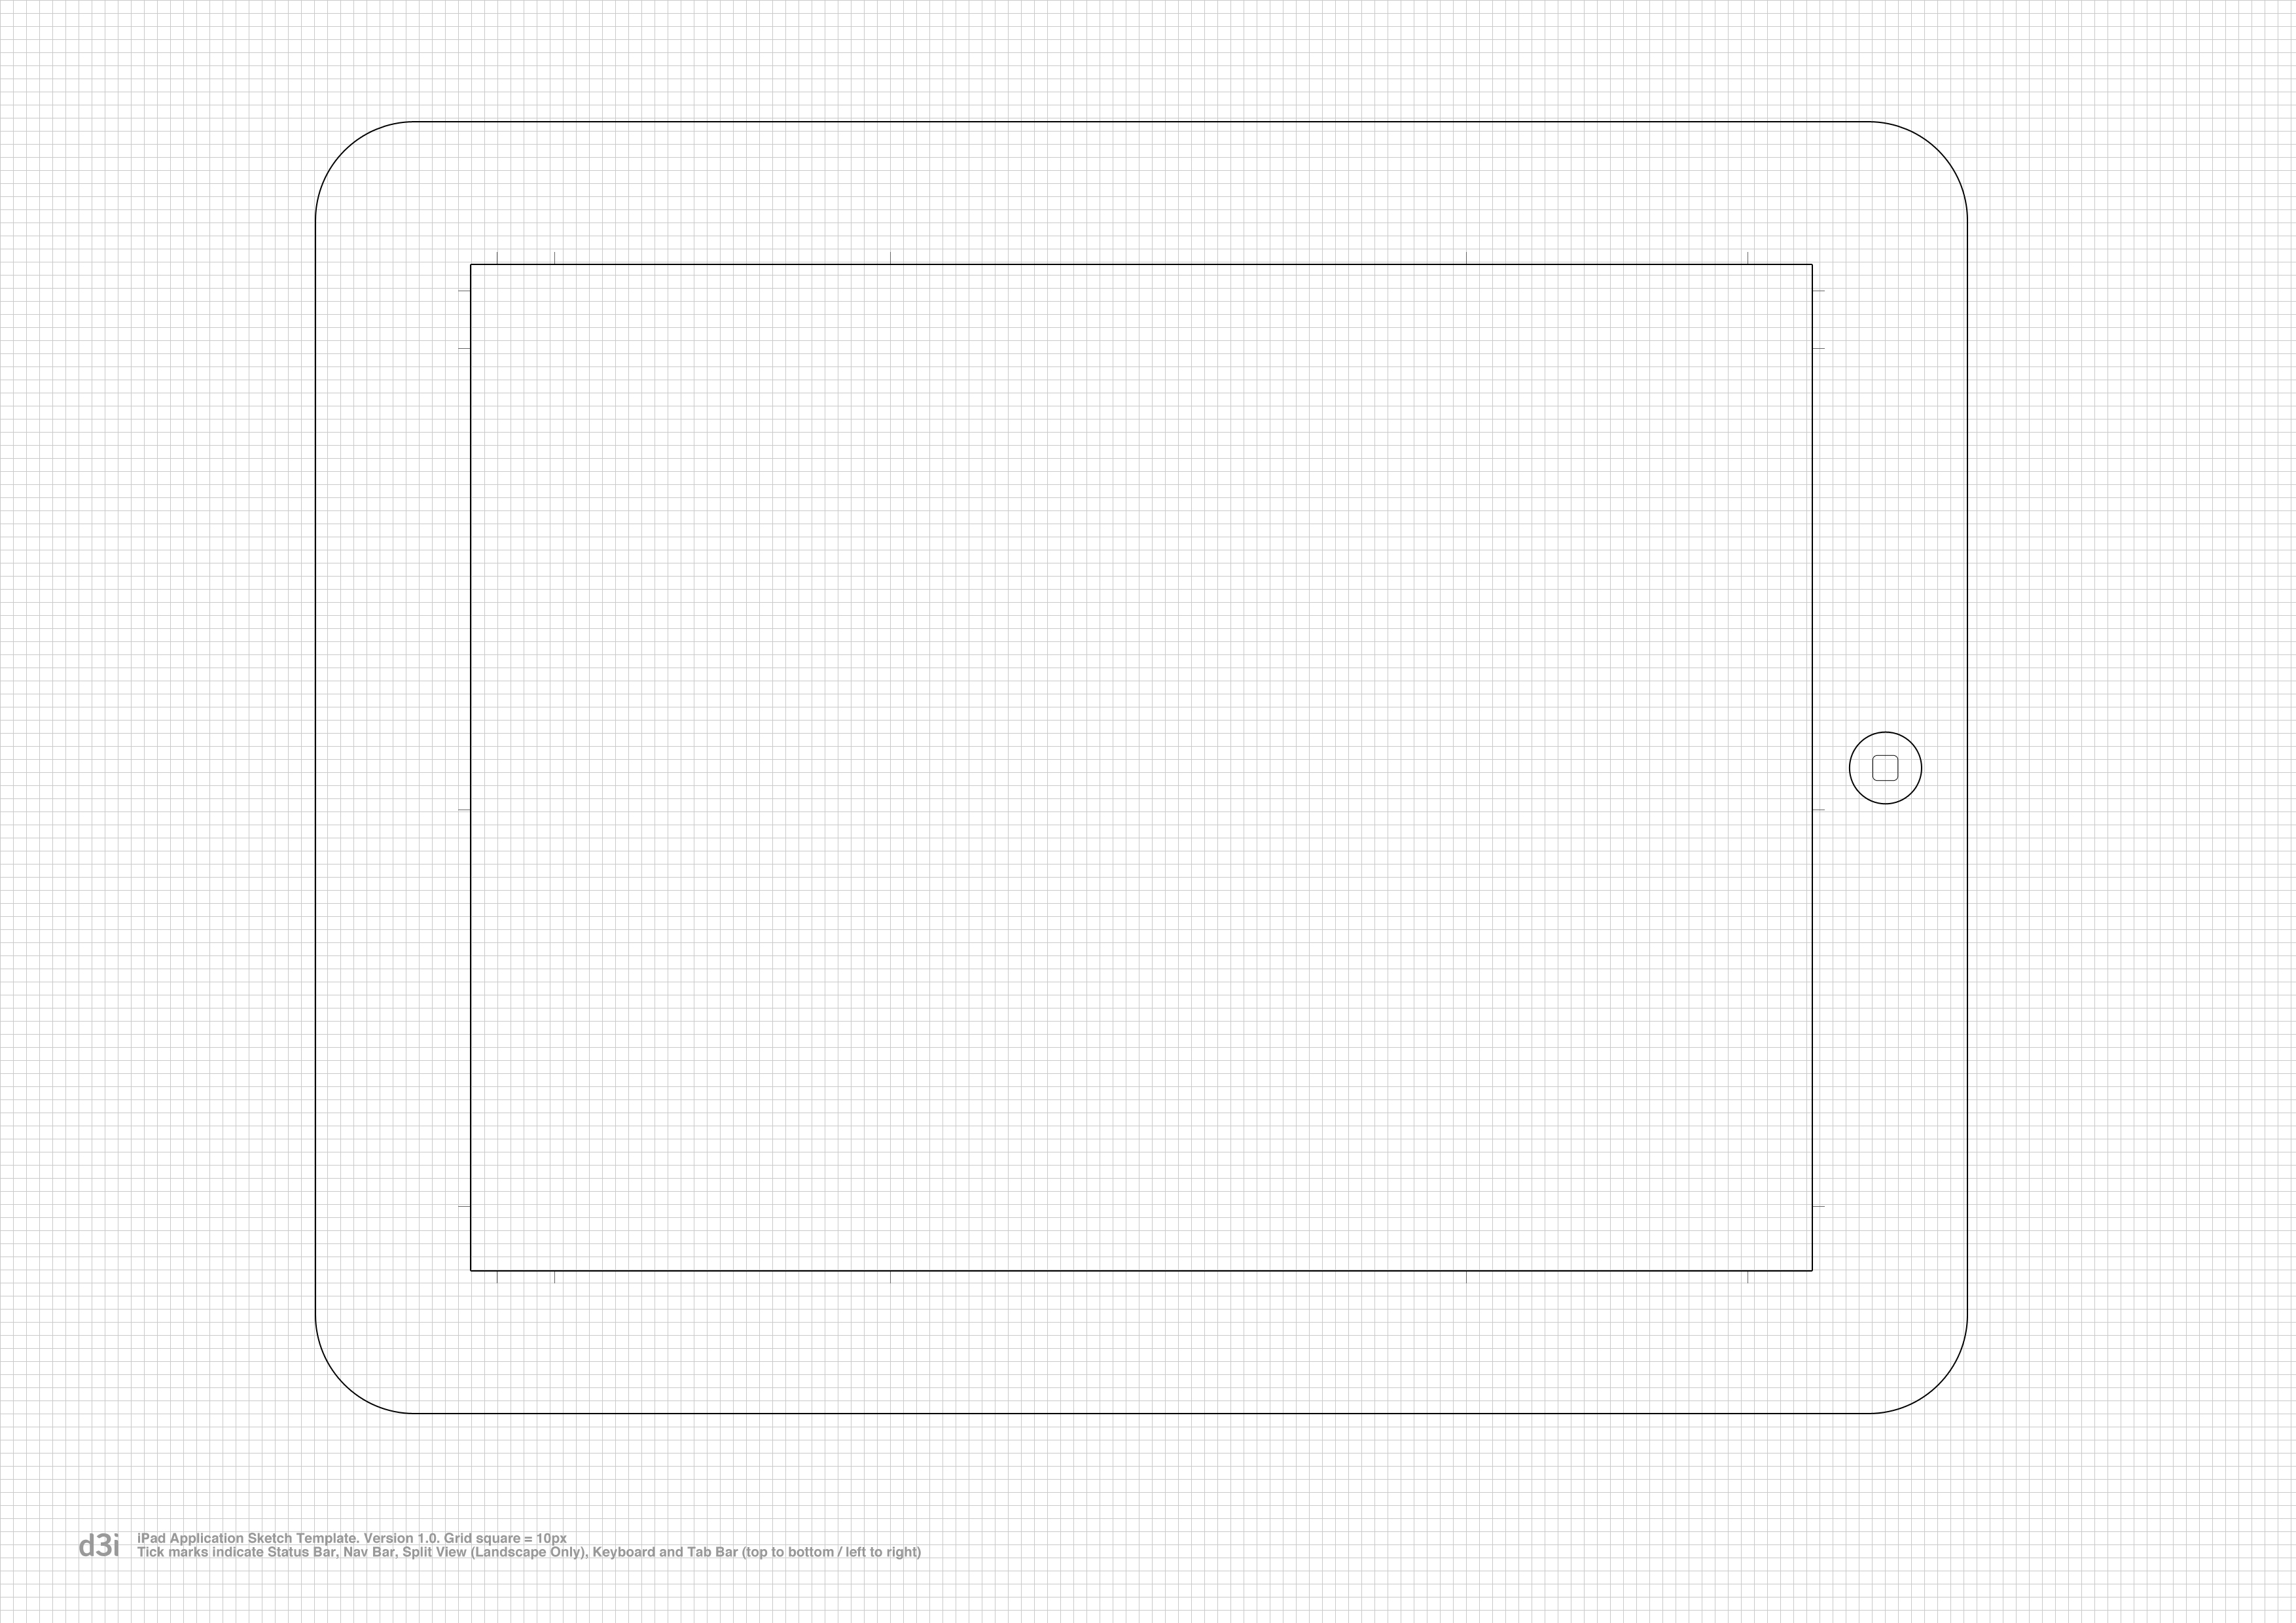 Ipad application sketch template by oliver waters dribbble 300dpi a4 jpeg download maxwellsz